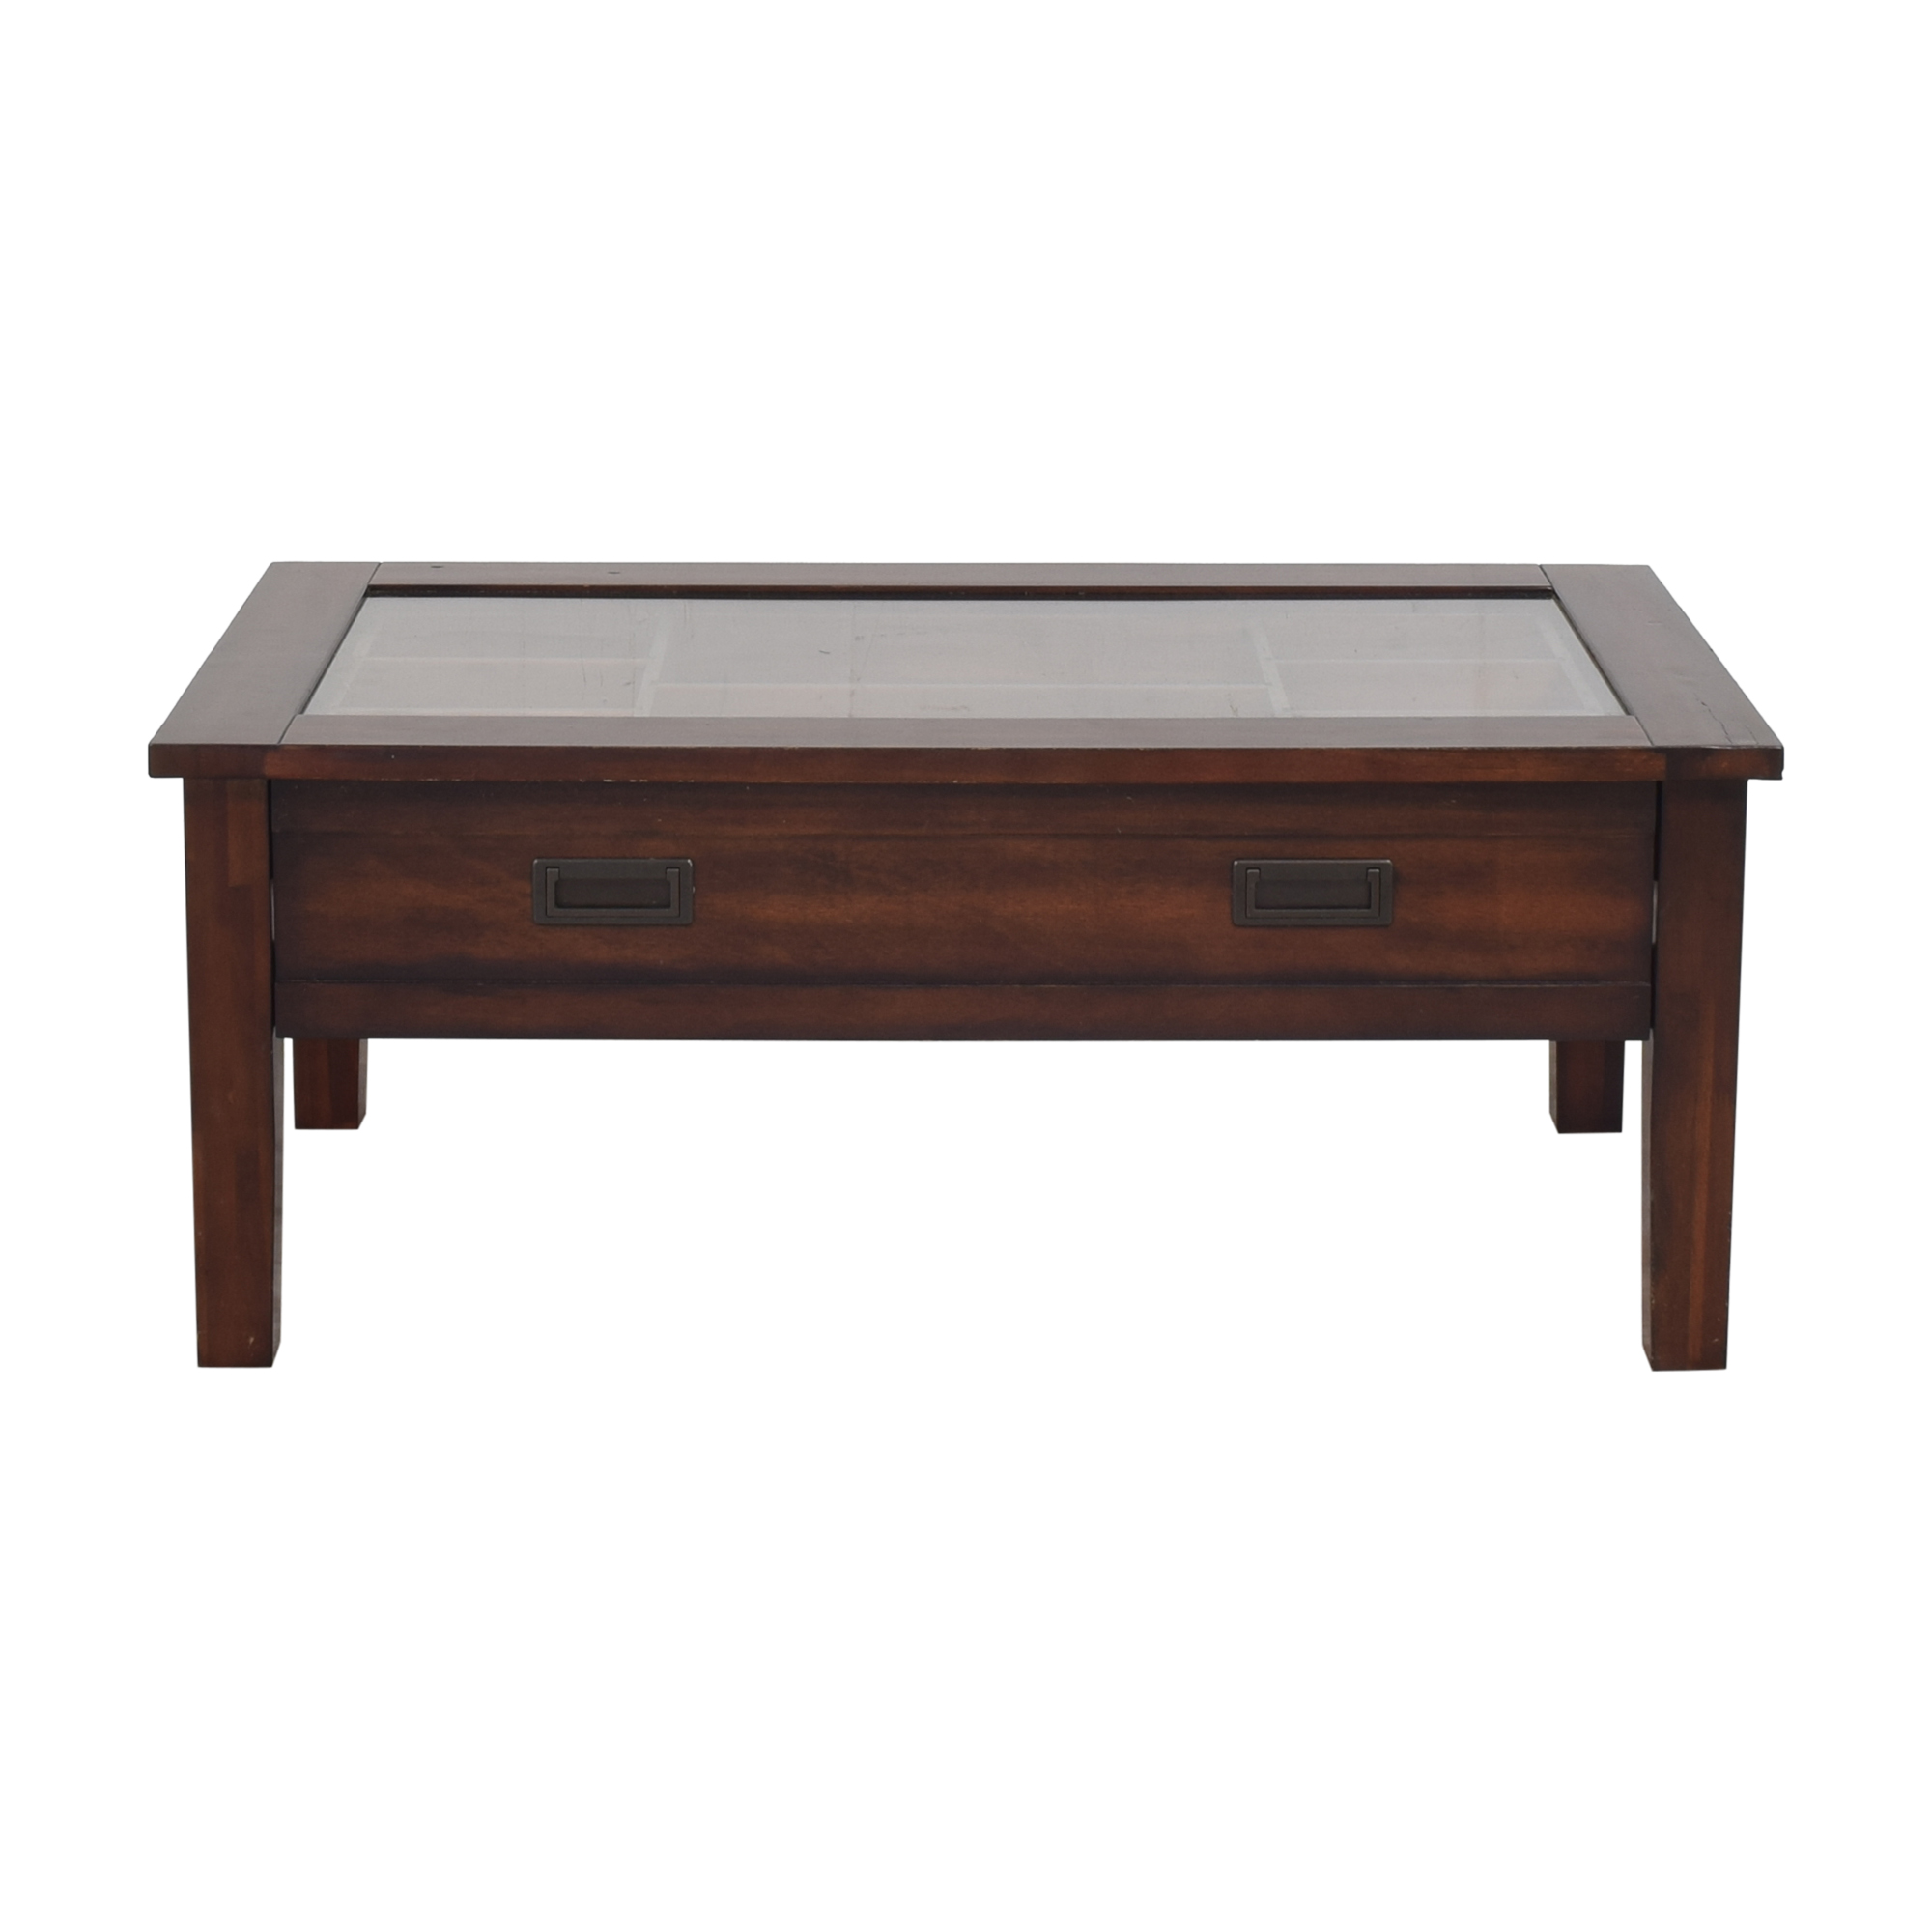 Pier 1 Pier 1 Curio Coffee Table used